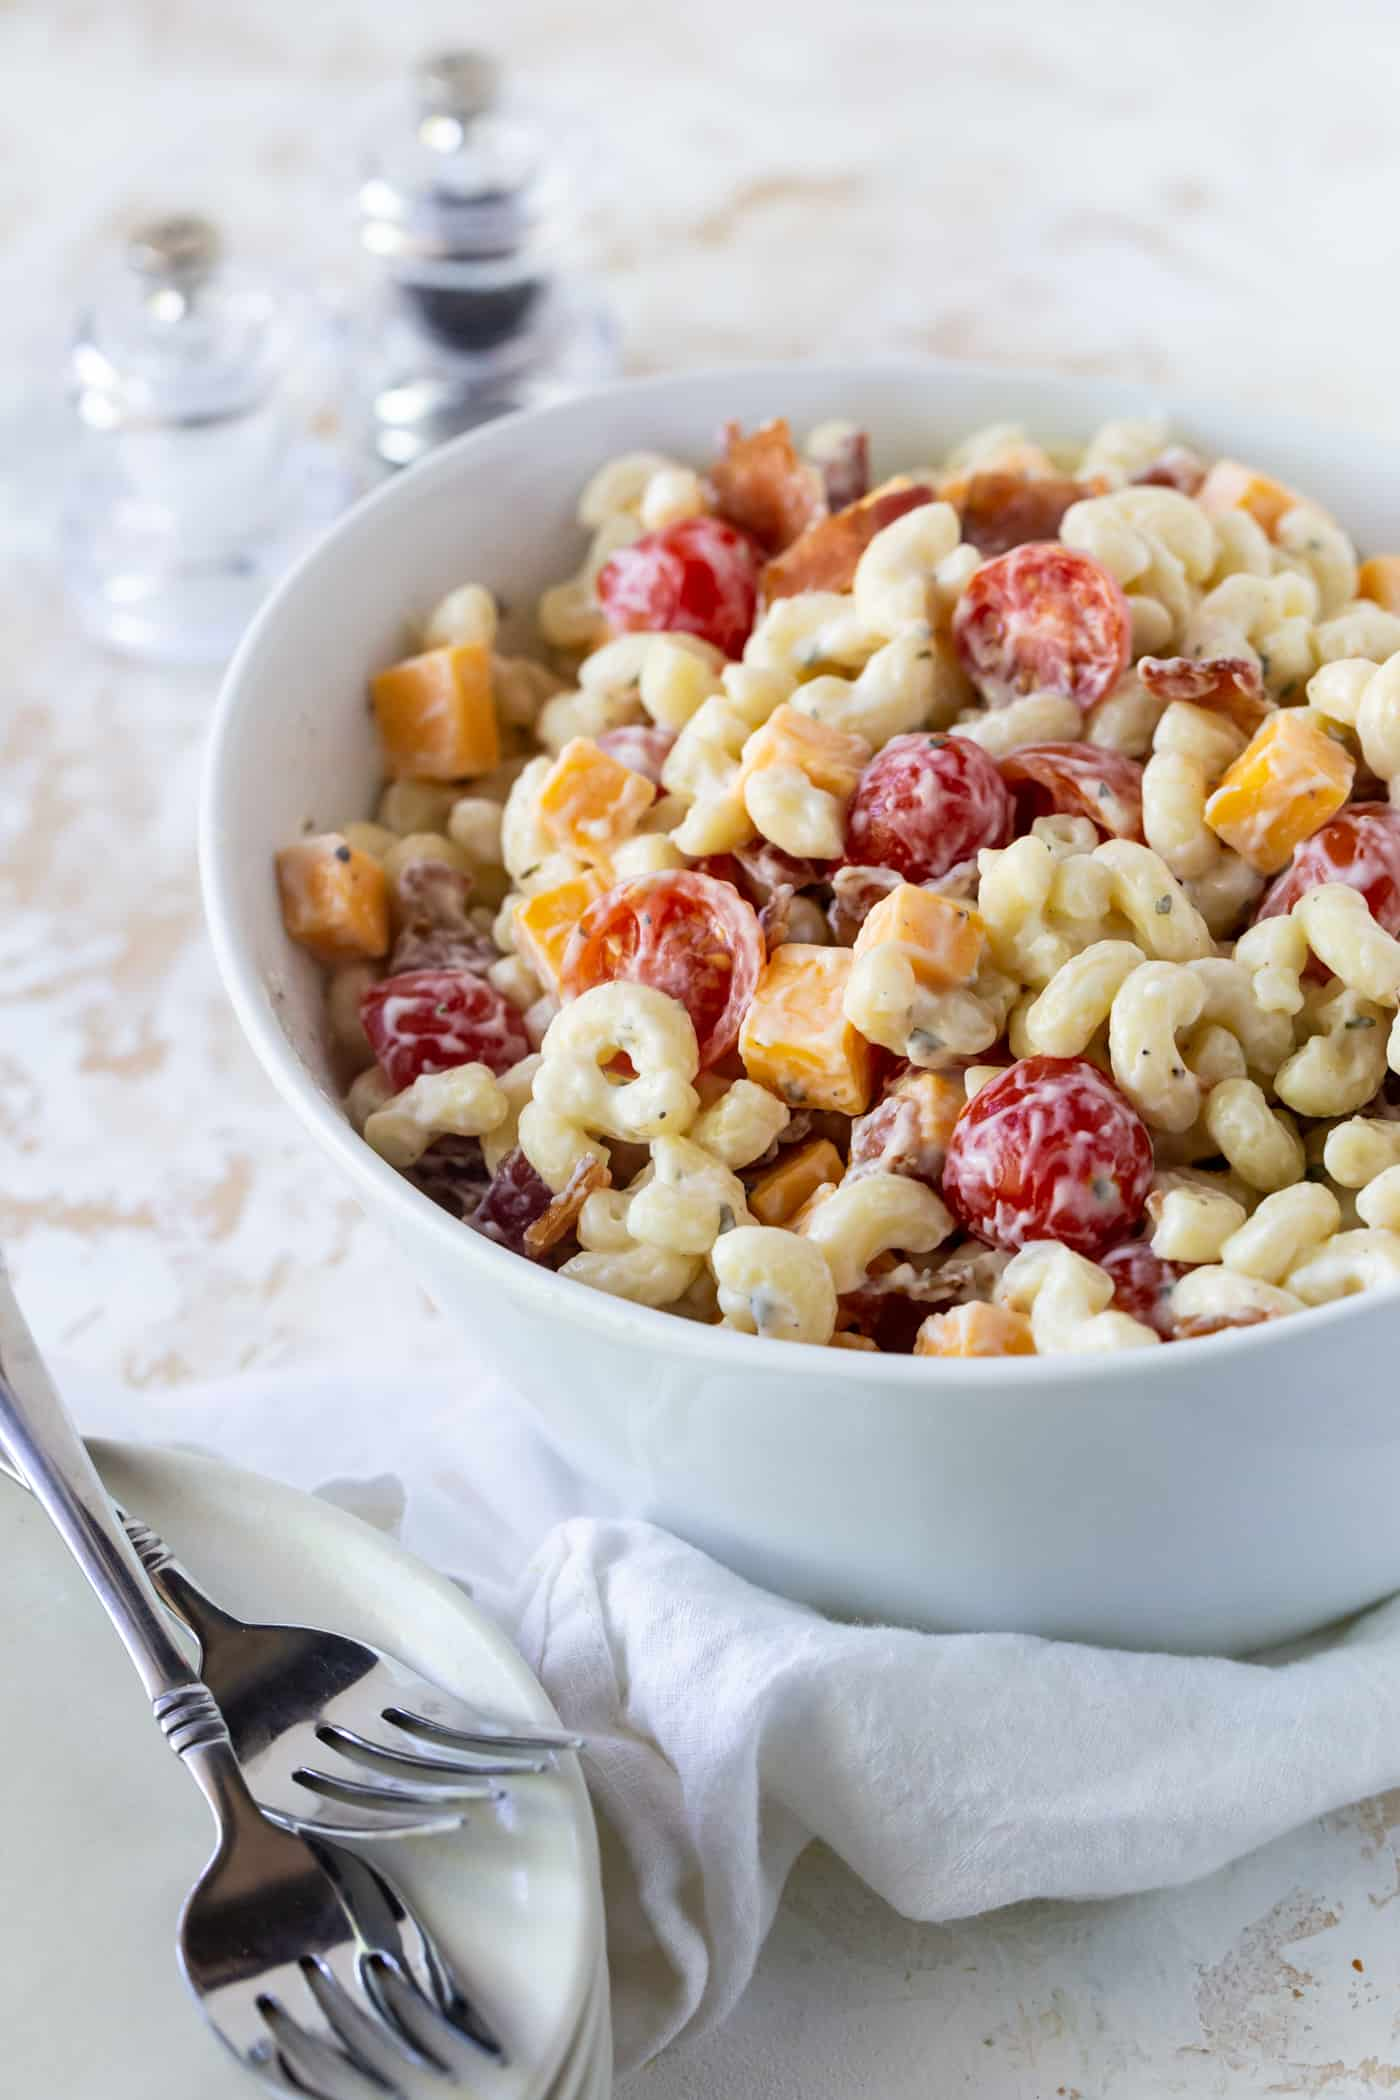 A bowl of pasta with tomatoes, cheese and bacon.